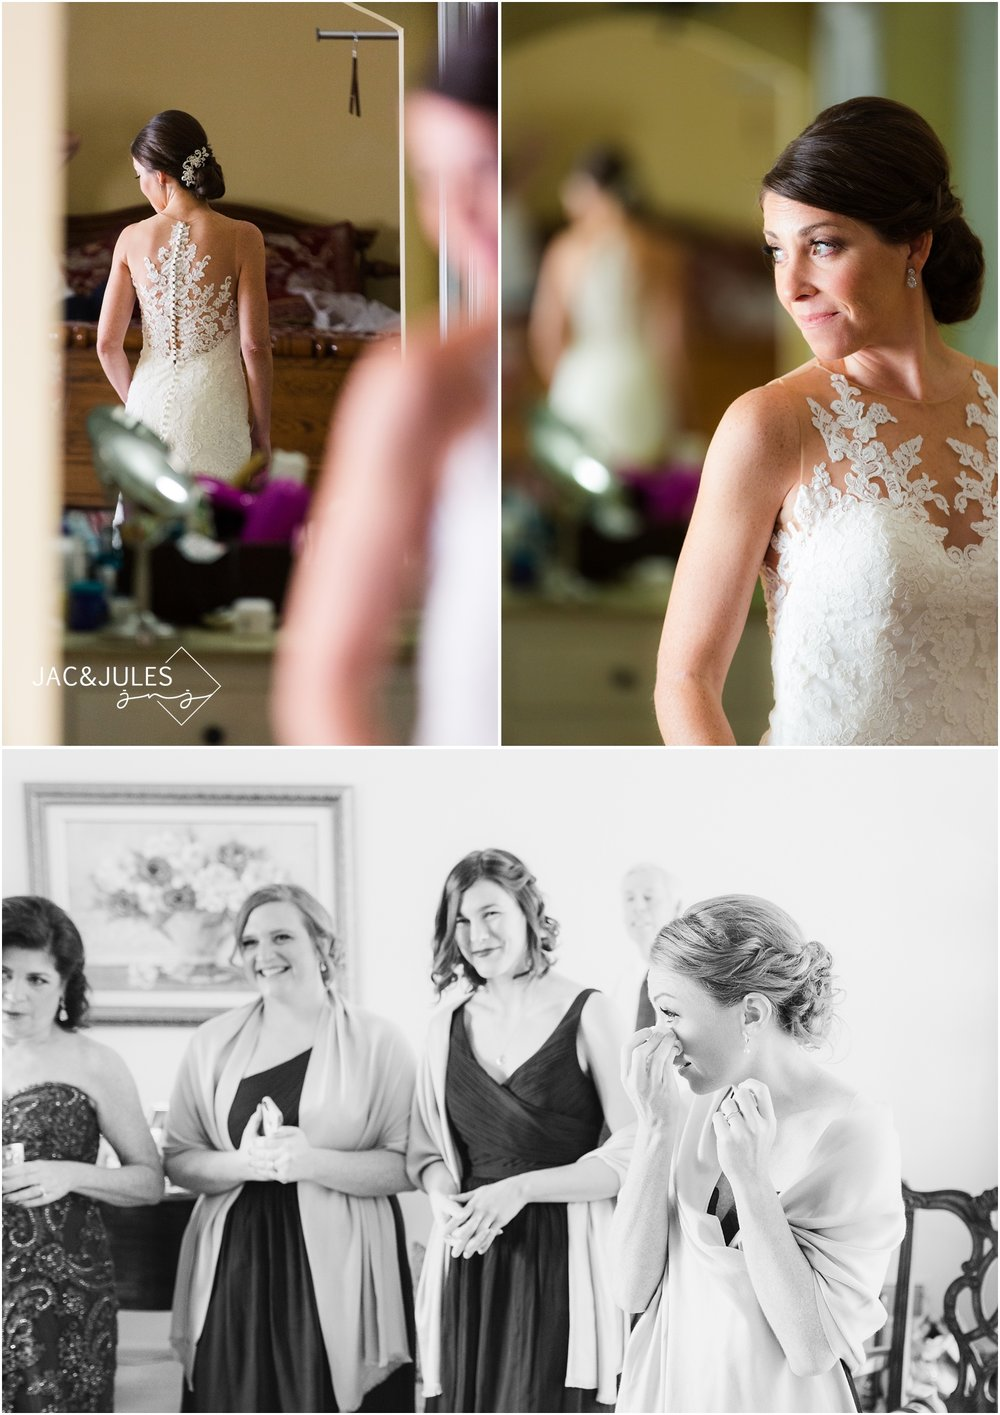 Bridal portraits at Mom's house in Point Pleasant, NJ.